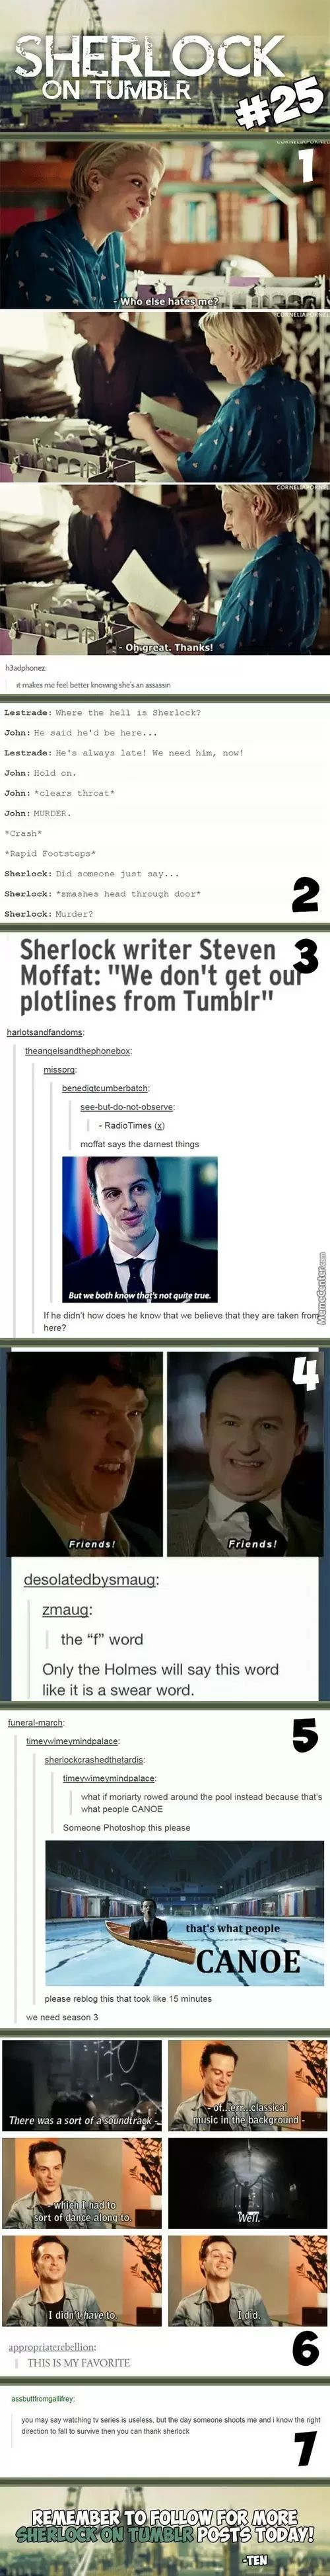 Sherlock On Tumblr #25